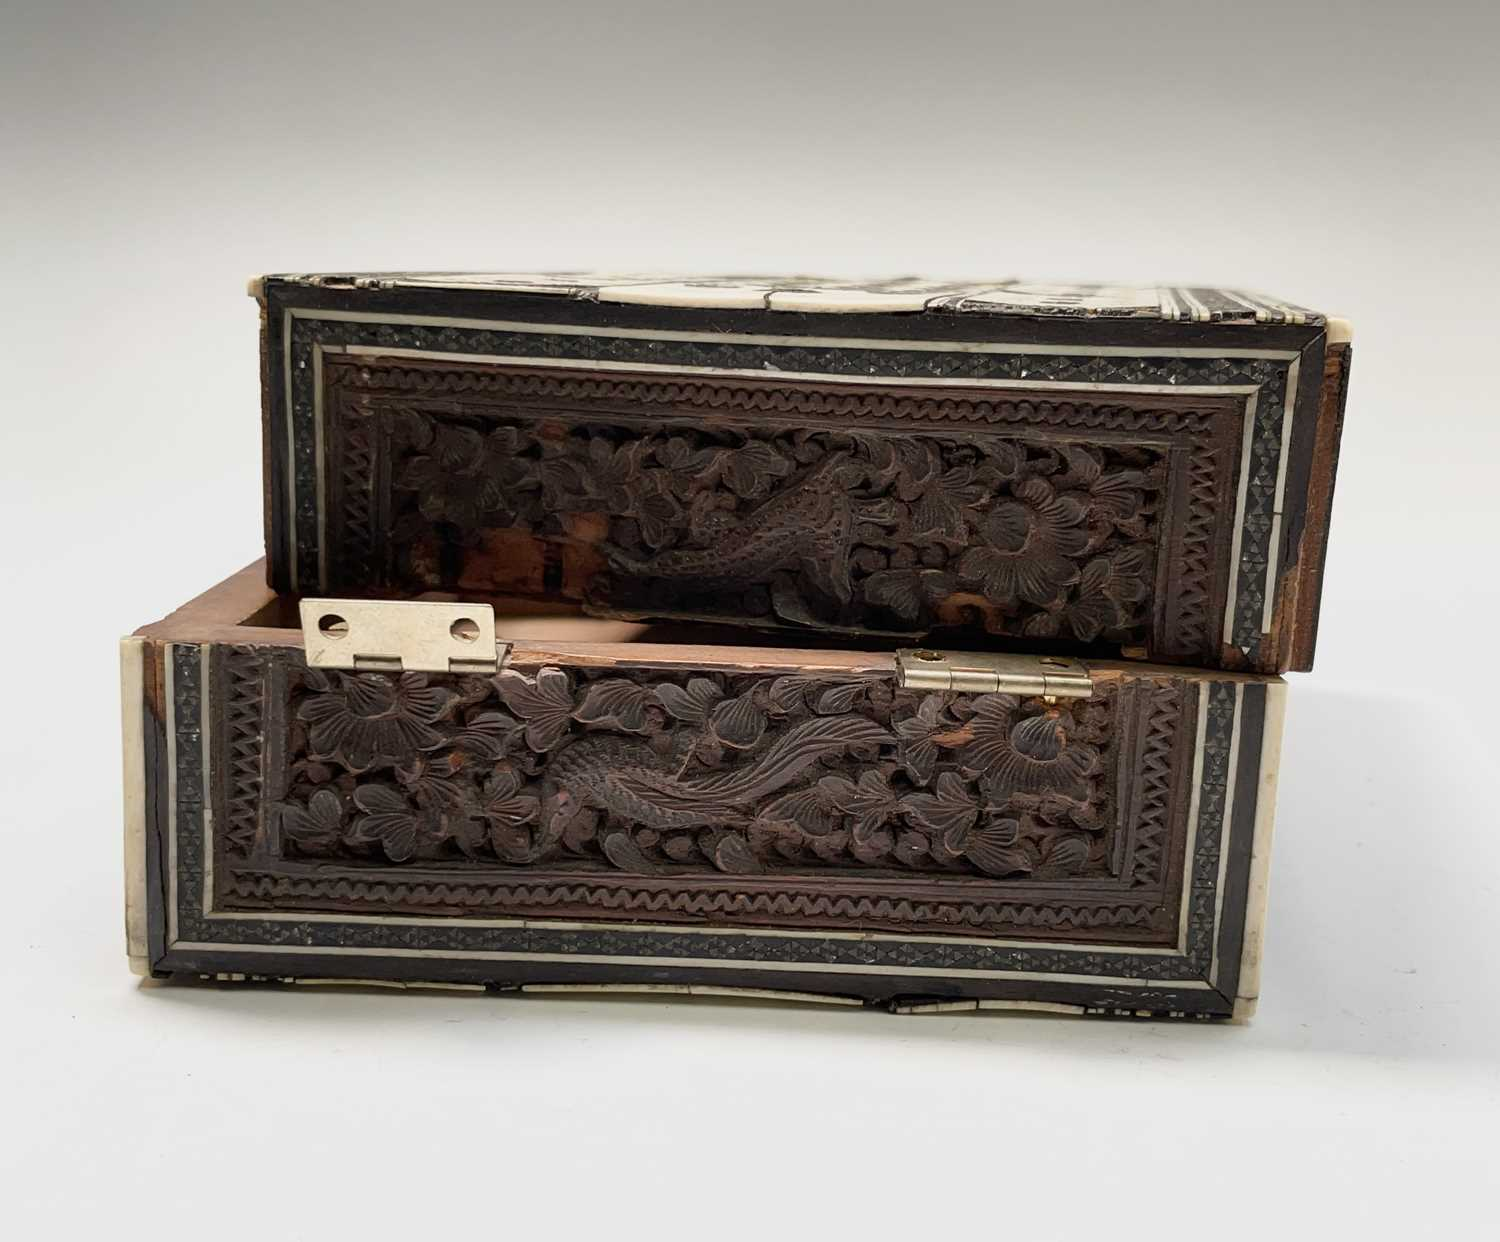 An Anglo Indian Vizagapatam and sadeli work banded folding cribbage board, 19th century, full length - Image 6 of 10